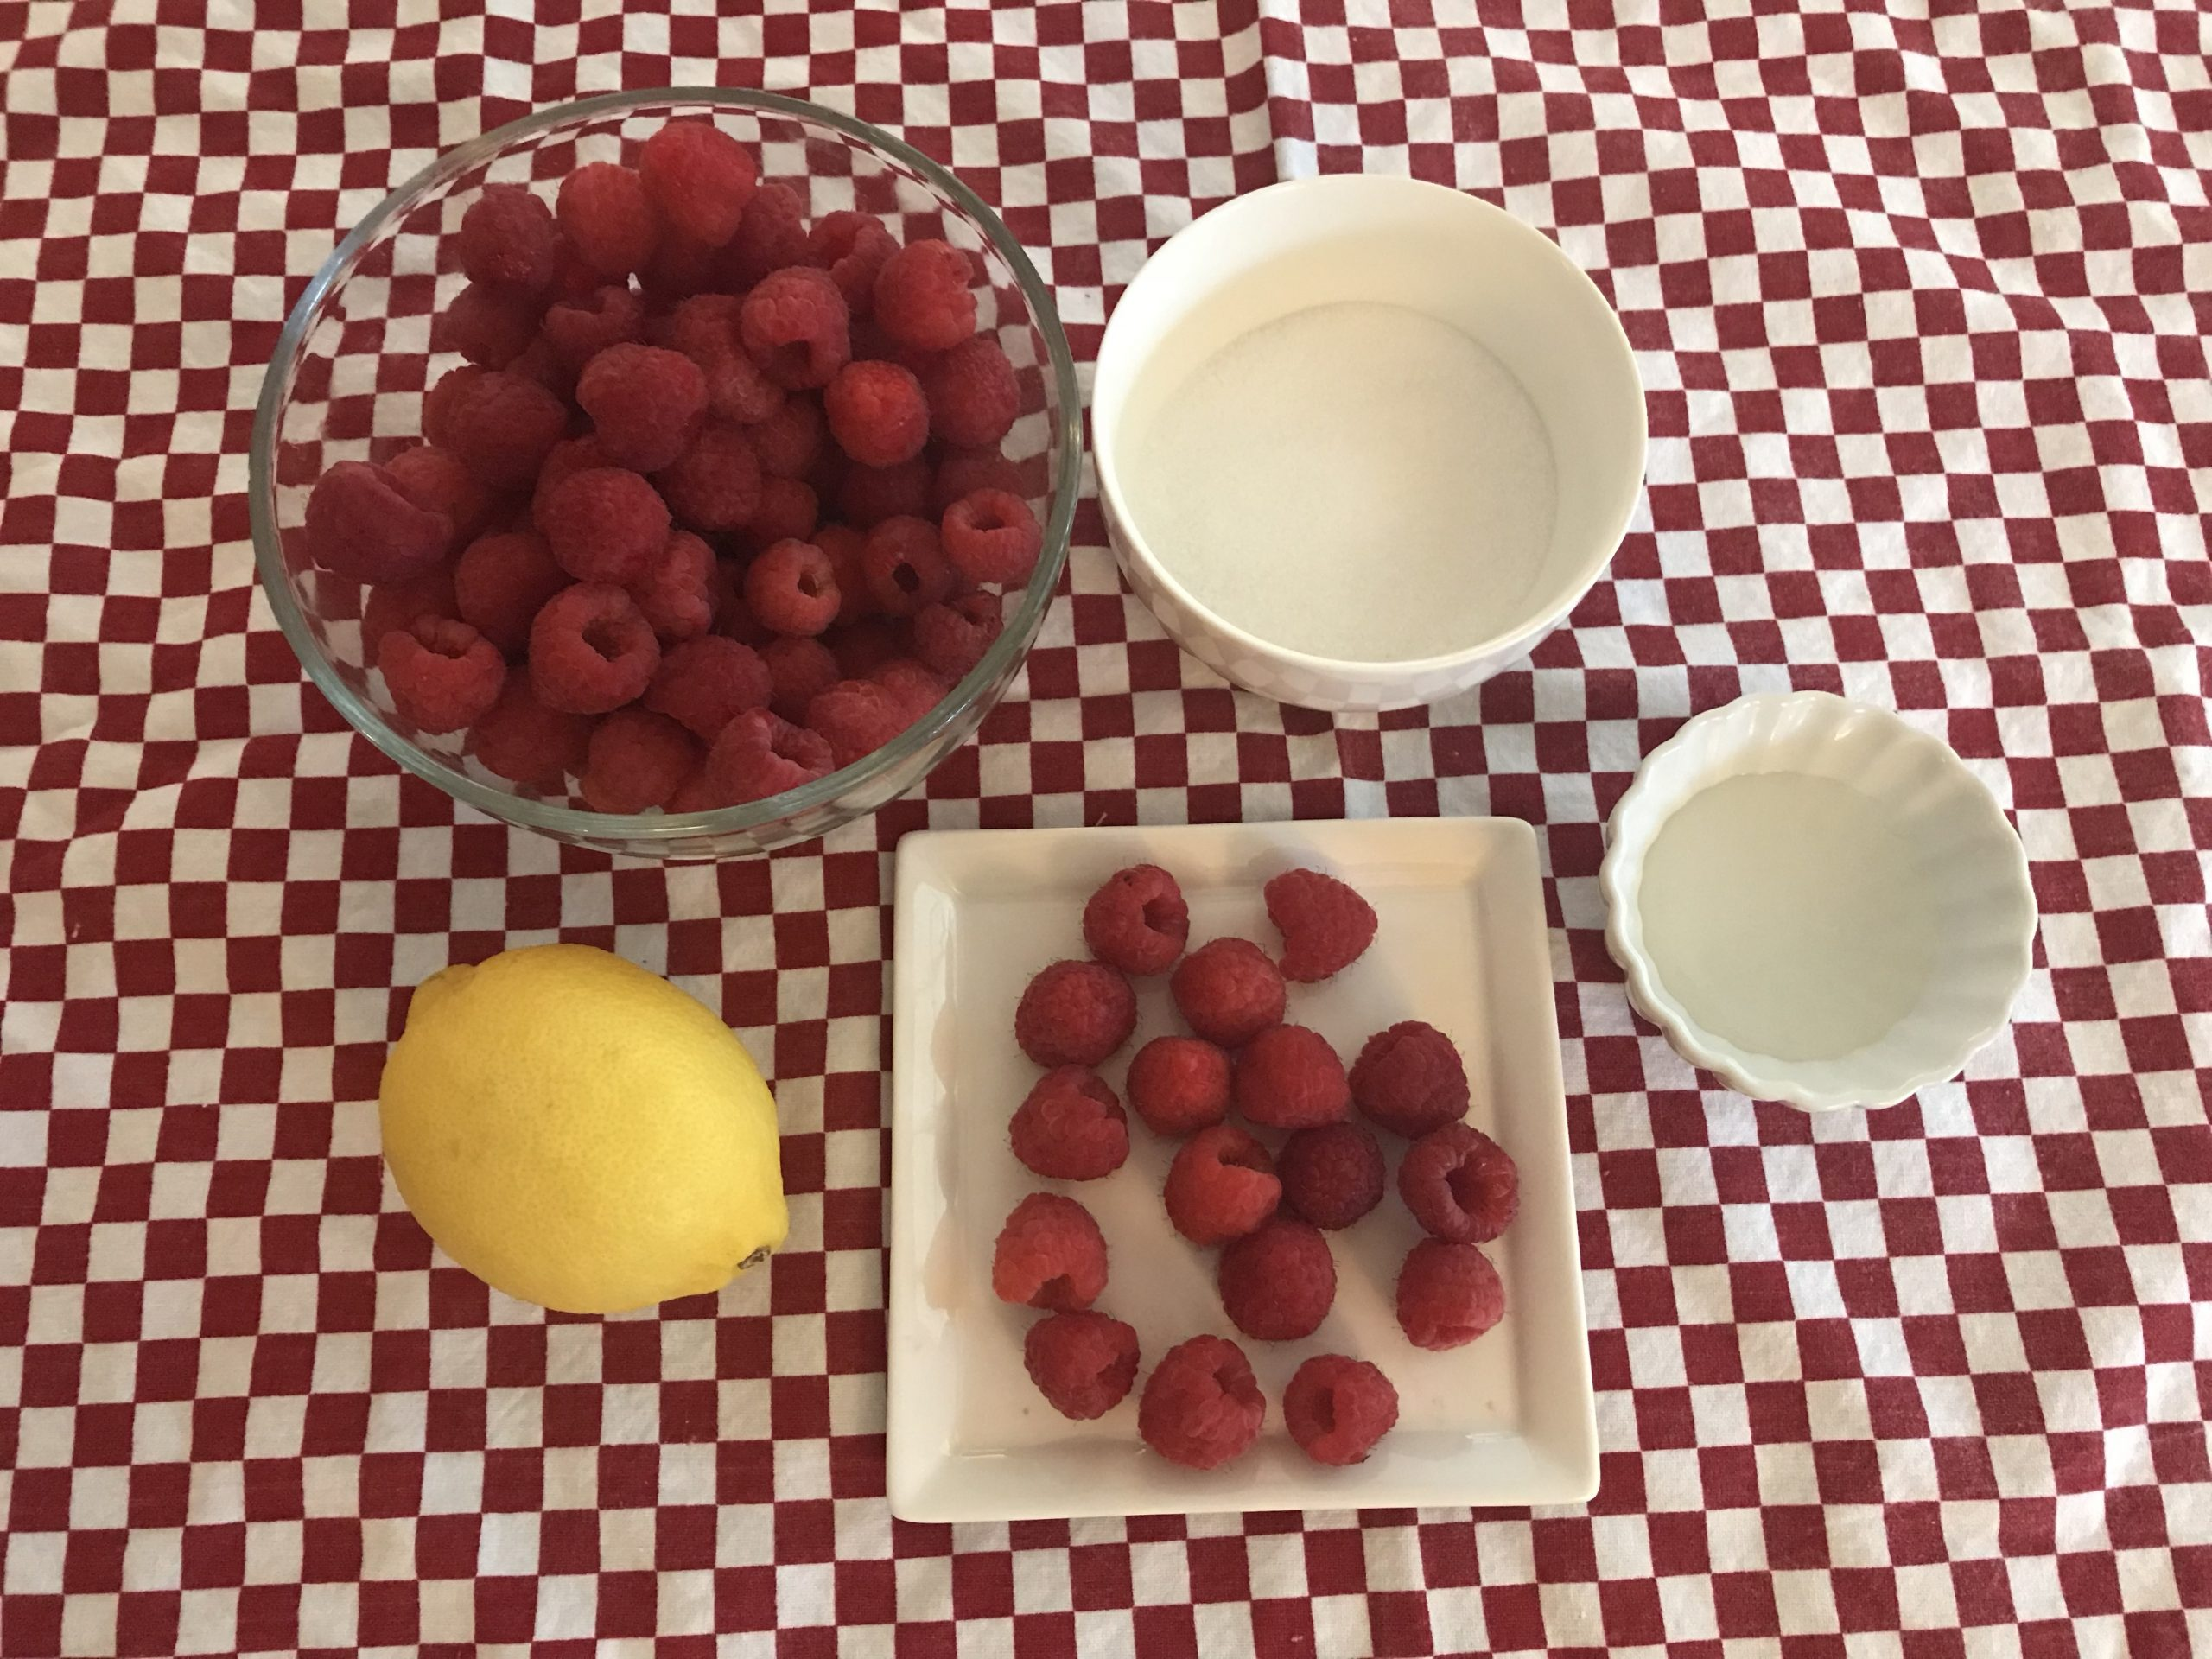 Ingredients for Raspberry Coulis